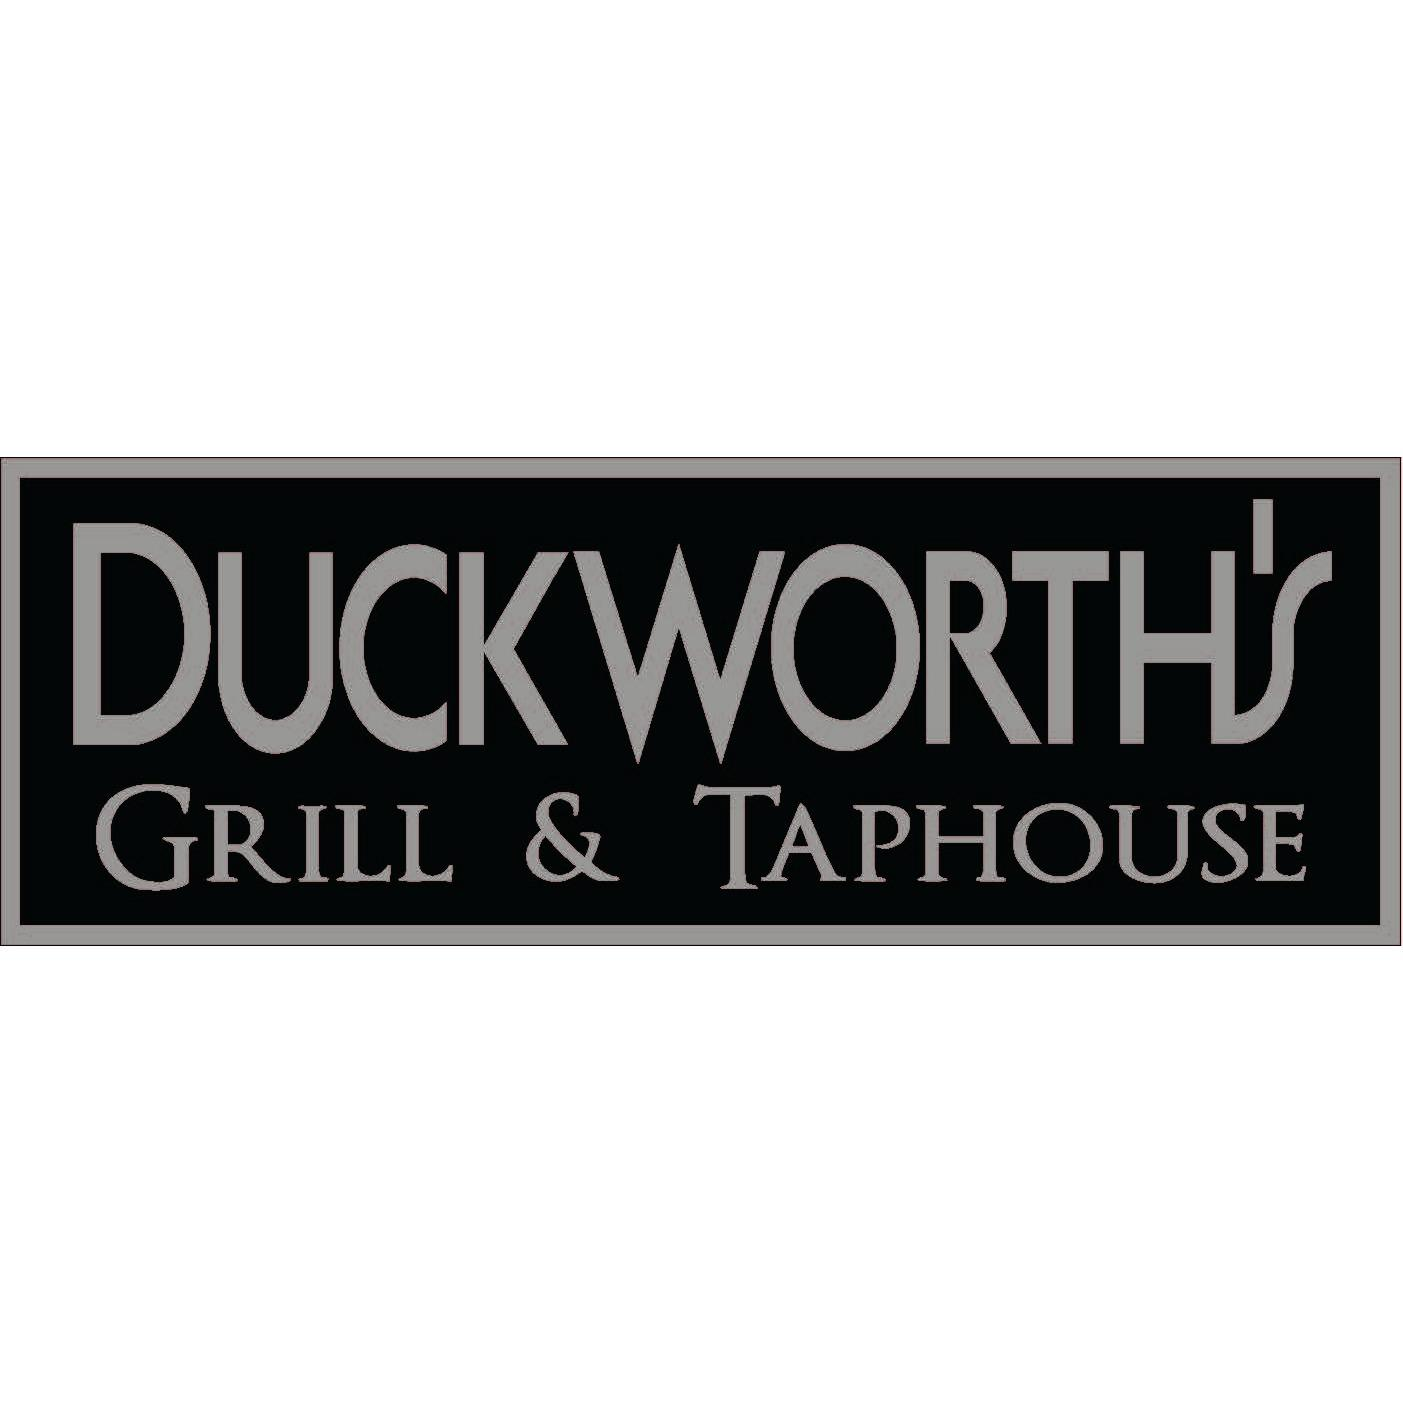 Duckworth's Grill & Taphouse Rea Farms